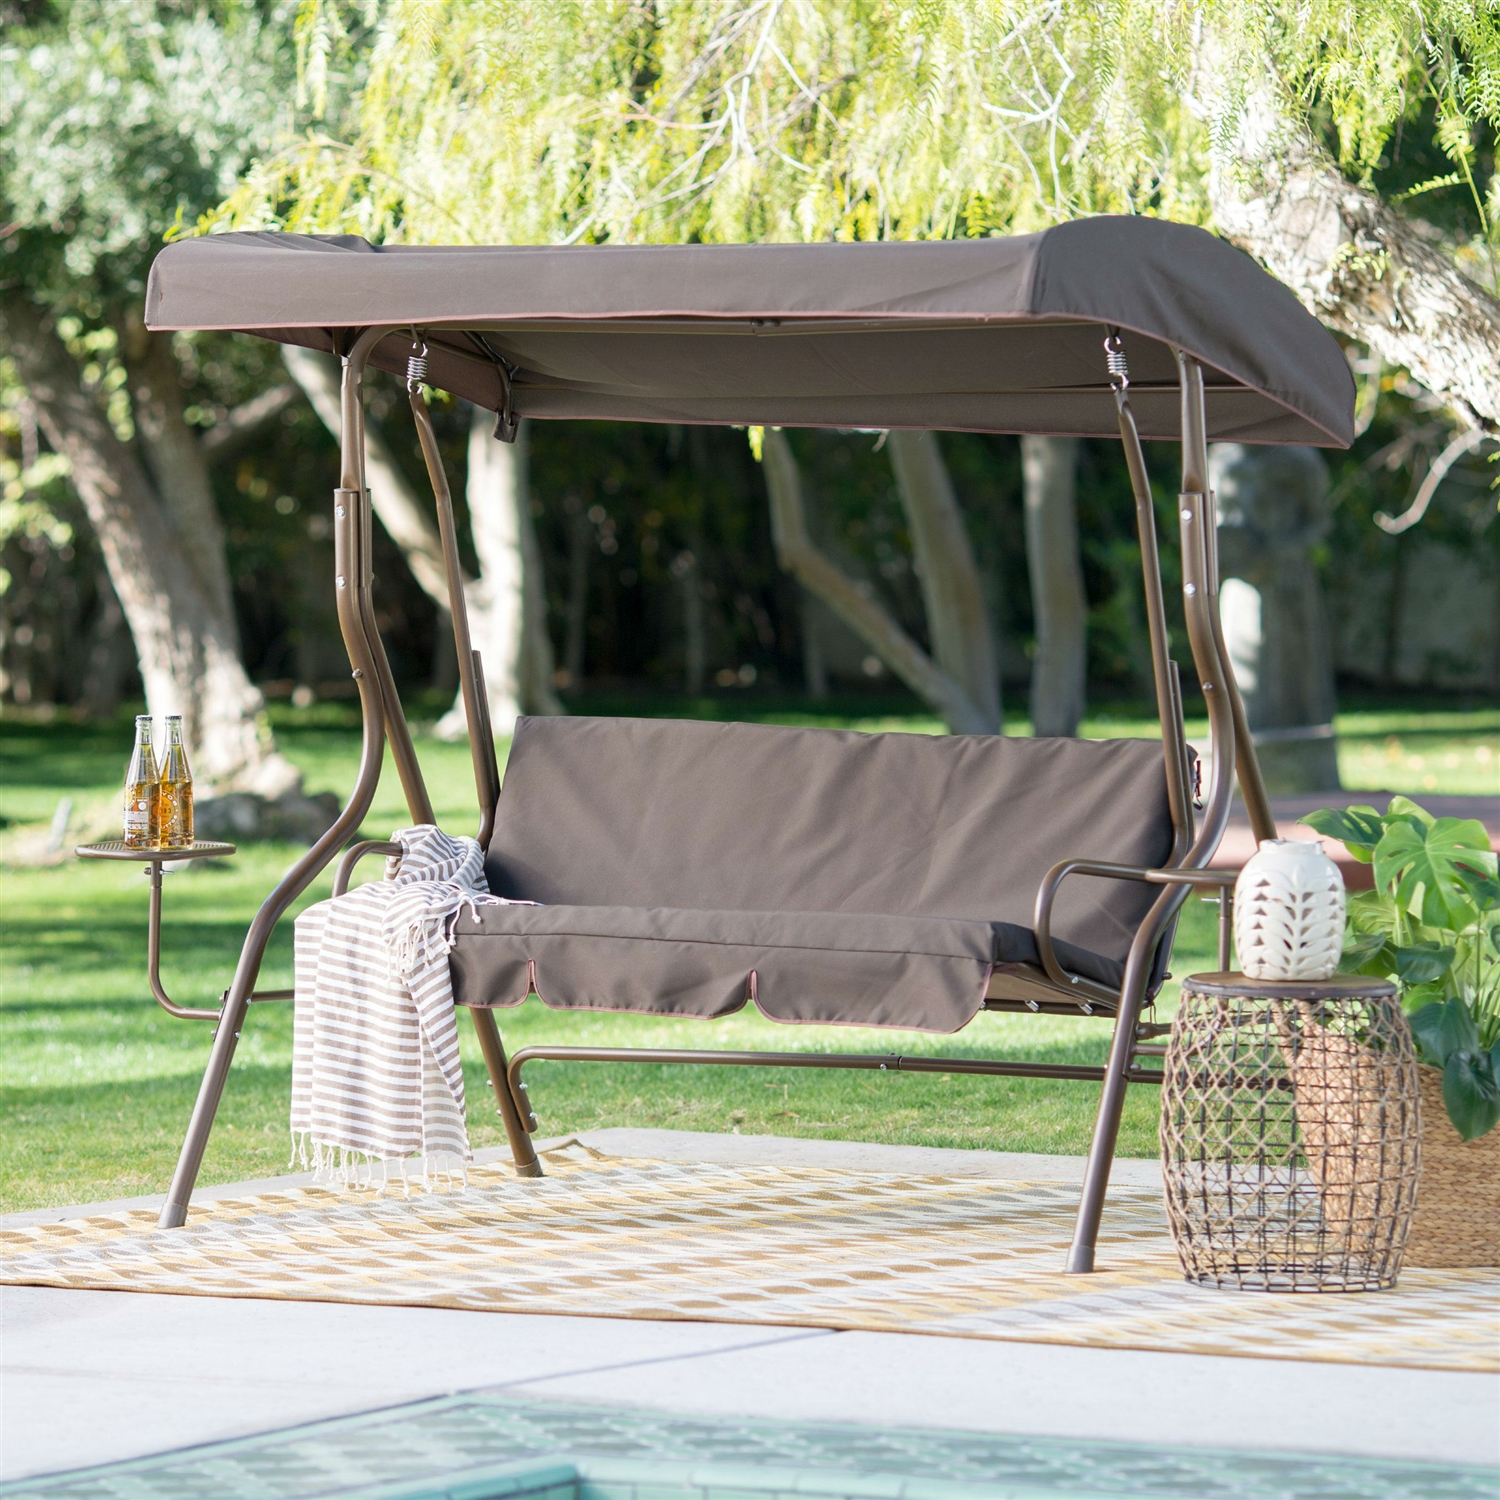 Outdoor Patio 2-Person Porch Swing with Adjustable Tilt Canopy and Side Table & Outdoor Patio 2-Person Porch Swing with Adjustable Tilt Canopy and ...